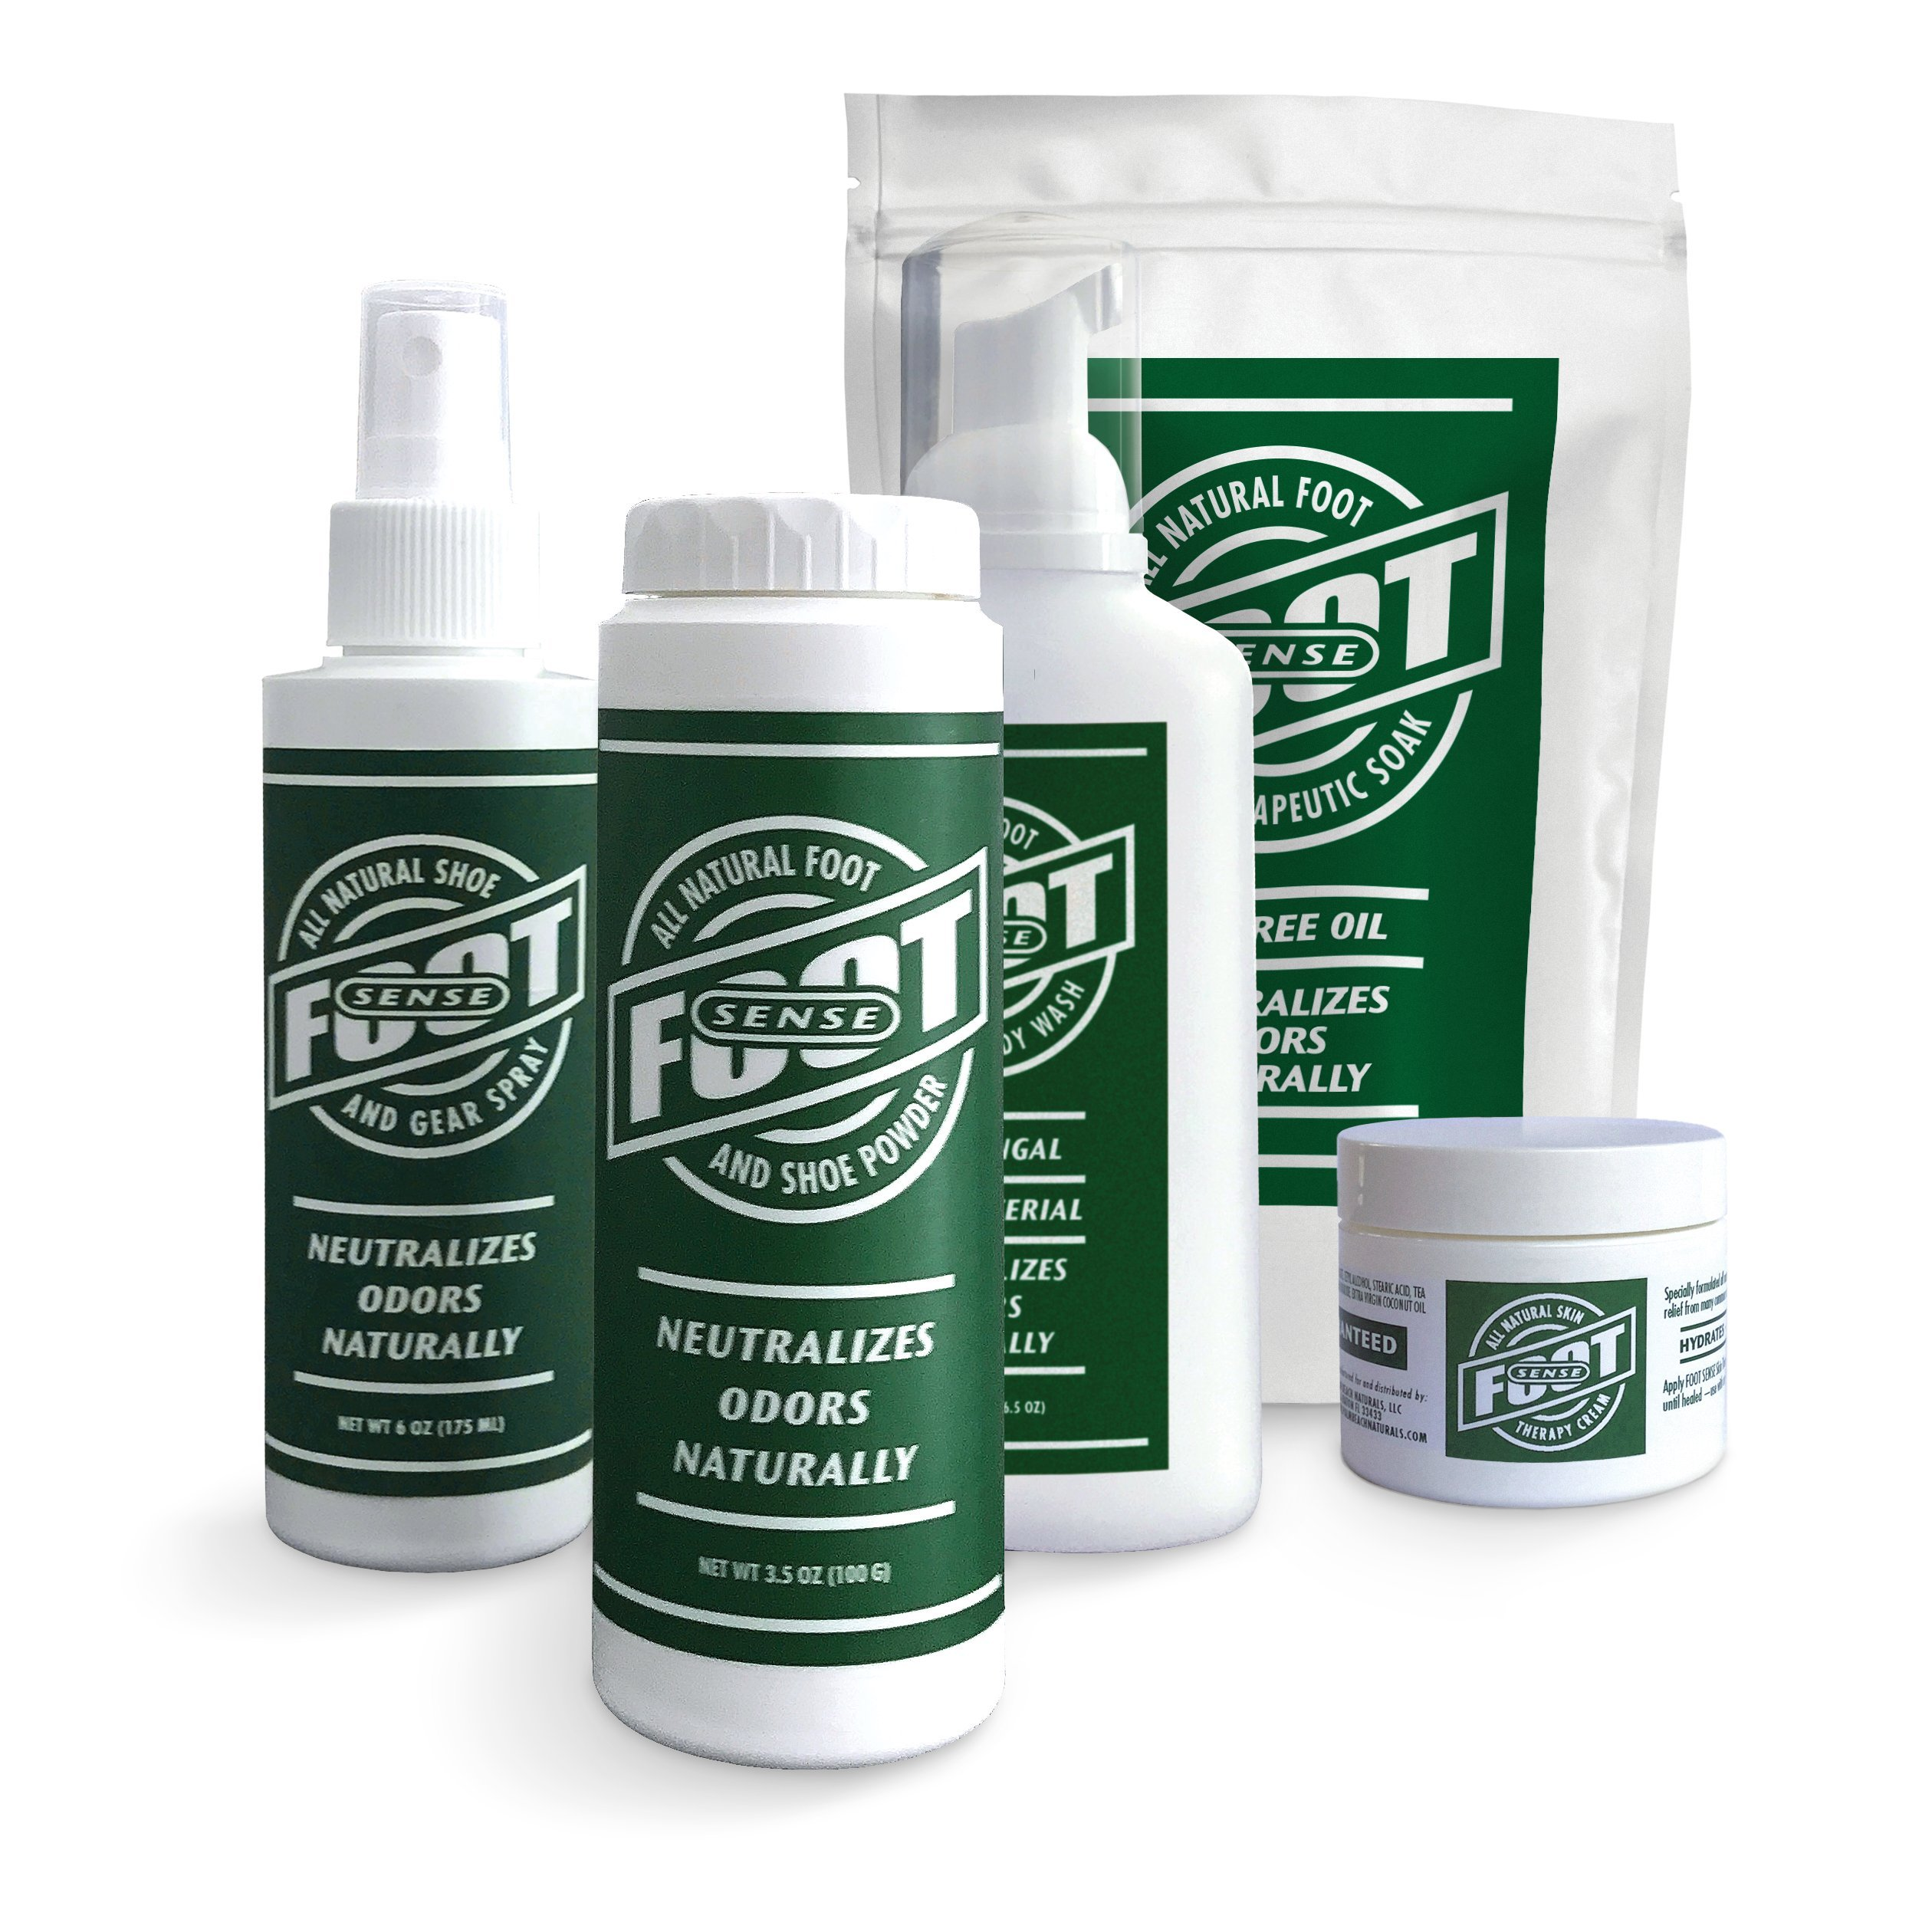 FOOT SENSE All Natural Smelly Foot & Shoe Powder - Foot Odor Eliminator lasts up to 6 months. Safely kills bacteria. Natural formula for smelly shoes and stinky feet. (1 Pack) by Foot Sense (Image #5)